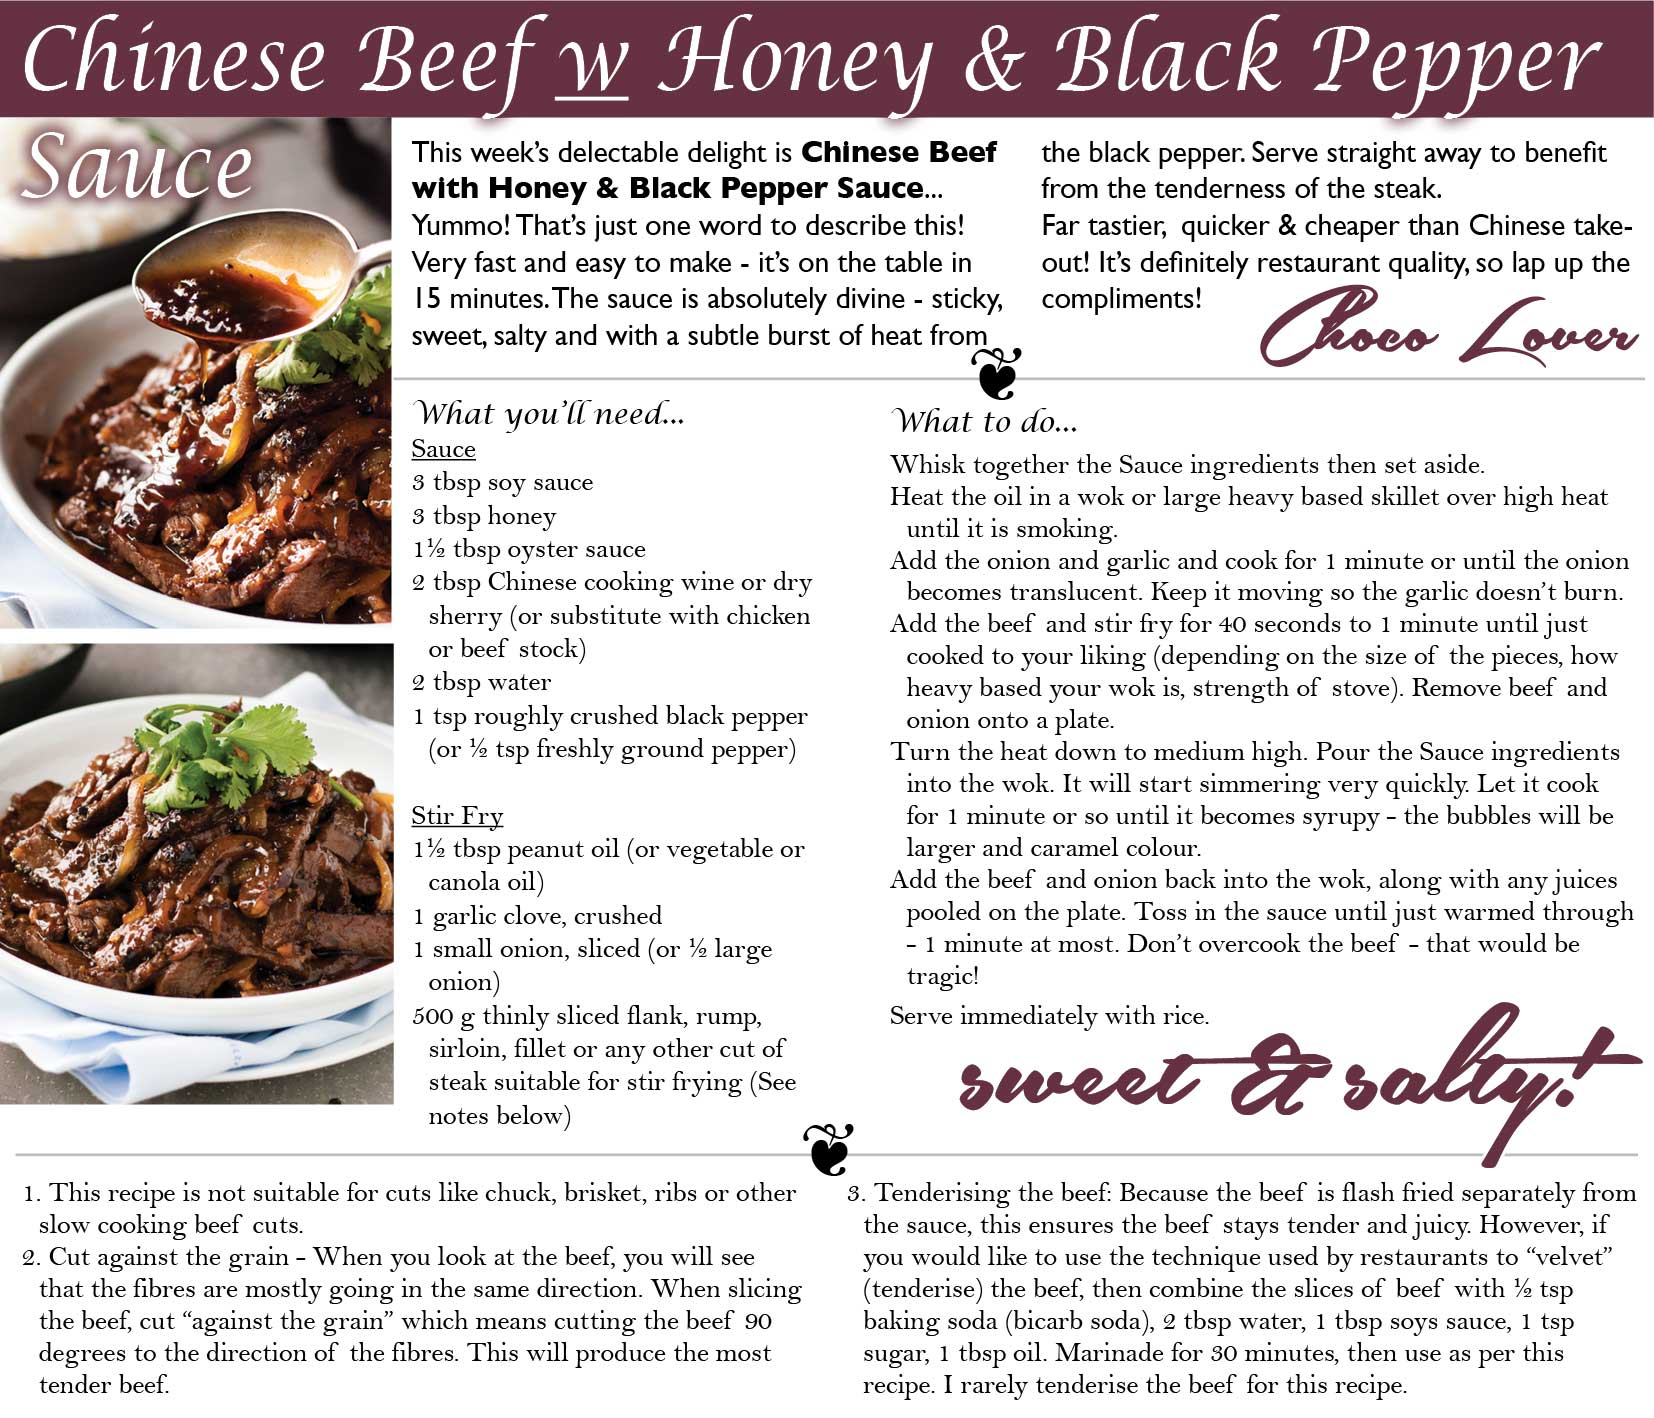 Chinese Beef with Honey and black Pepper Sauce. Yummo! That's just one word to describe this! Very fast and easy to make - it's on the table in 15 minutes. The sauce is absolutely devine - sticky, sweet, salty and with a subtle burst of heat from the black pepper. Serve straight away to benefit from the tenderness of the steak